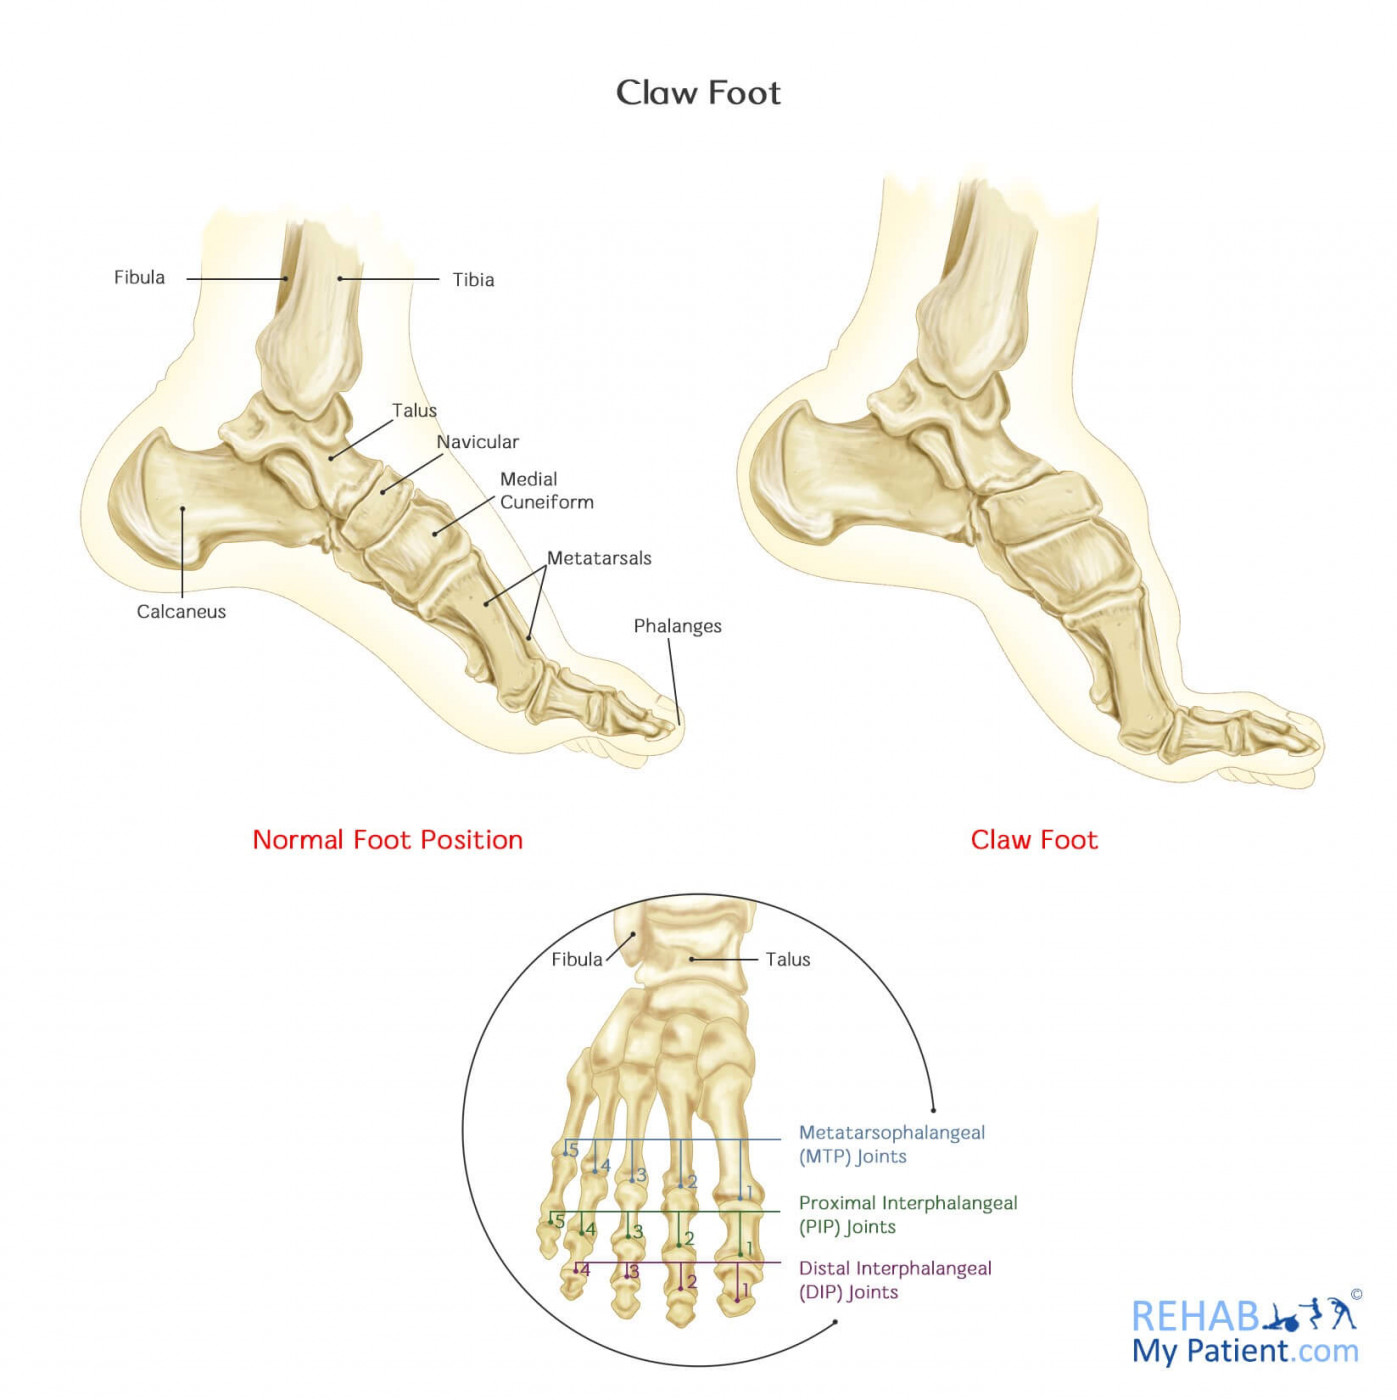 Claw Foot | Rehab My Patient